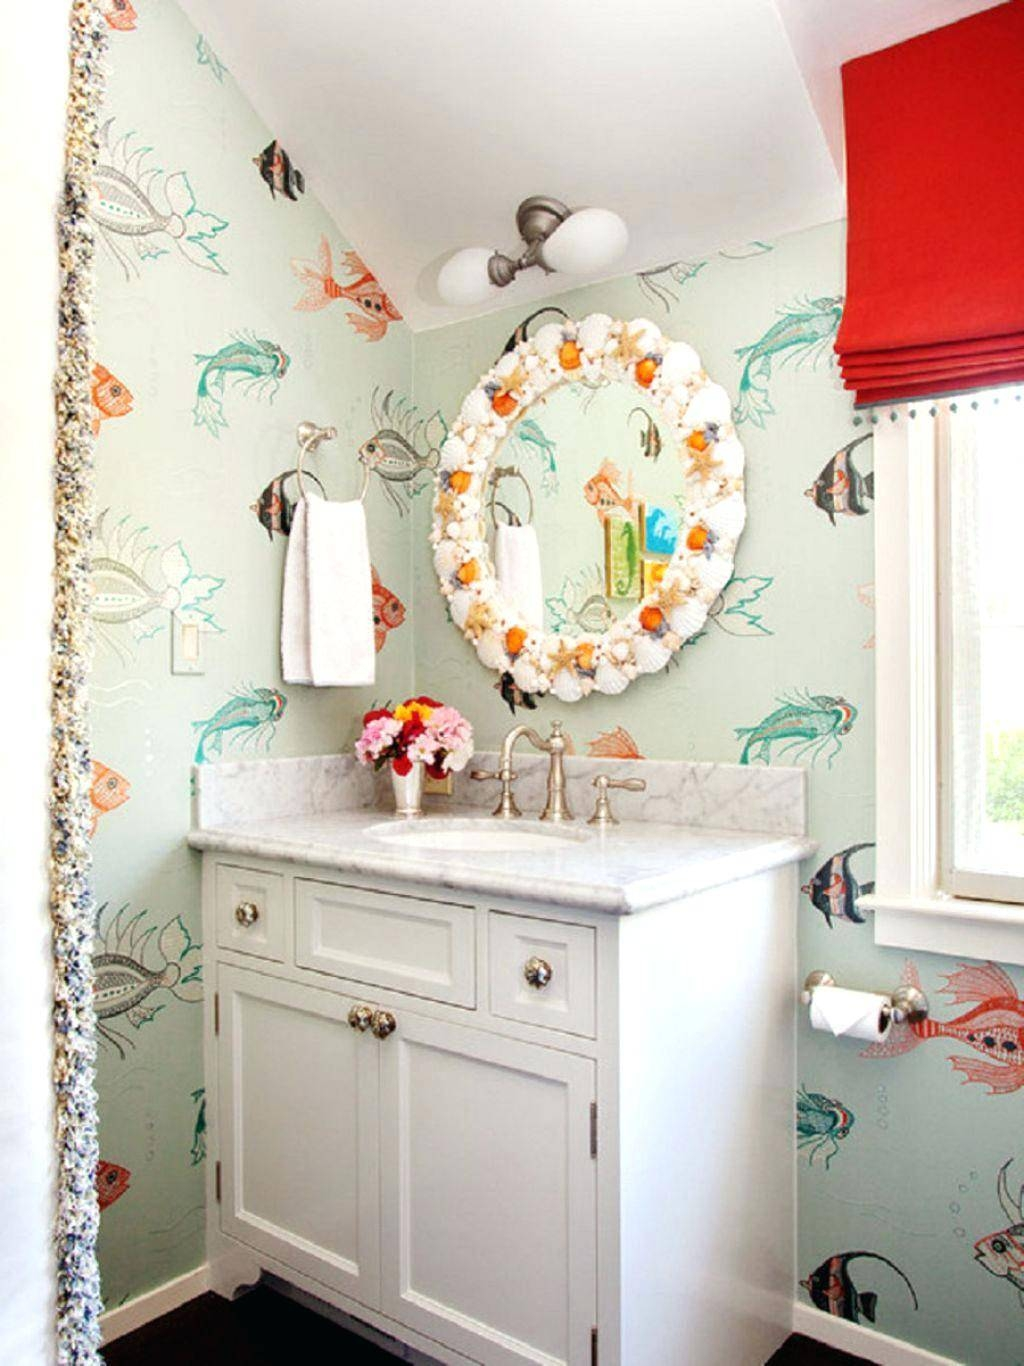 Kids Bathroom Wall Decals Bathroom Vibrant Red Roman Shade Also Intended For Best And Newest Fish Decals For Bathroom (View 16 of 30)